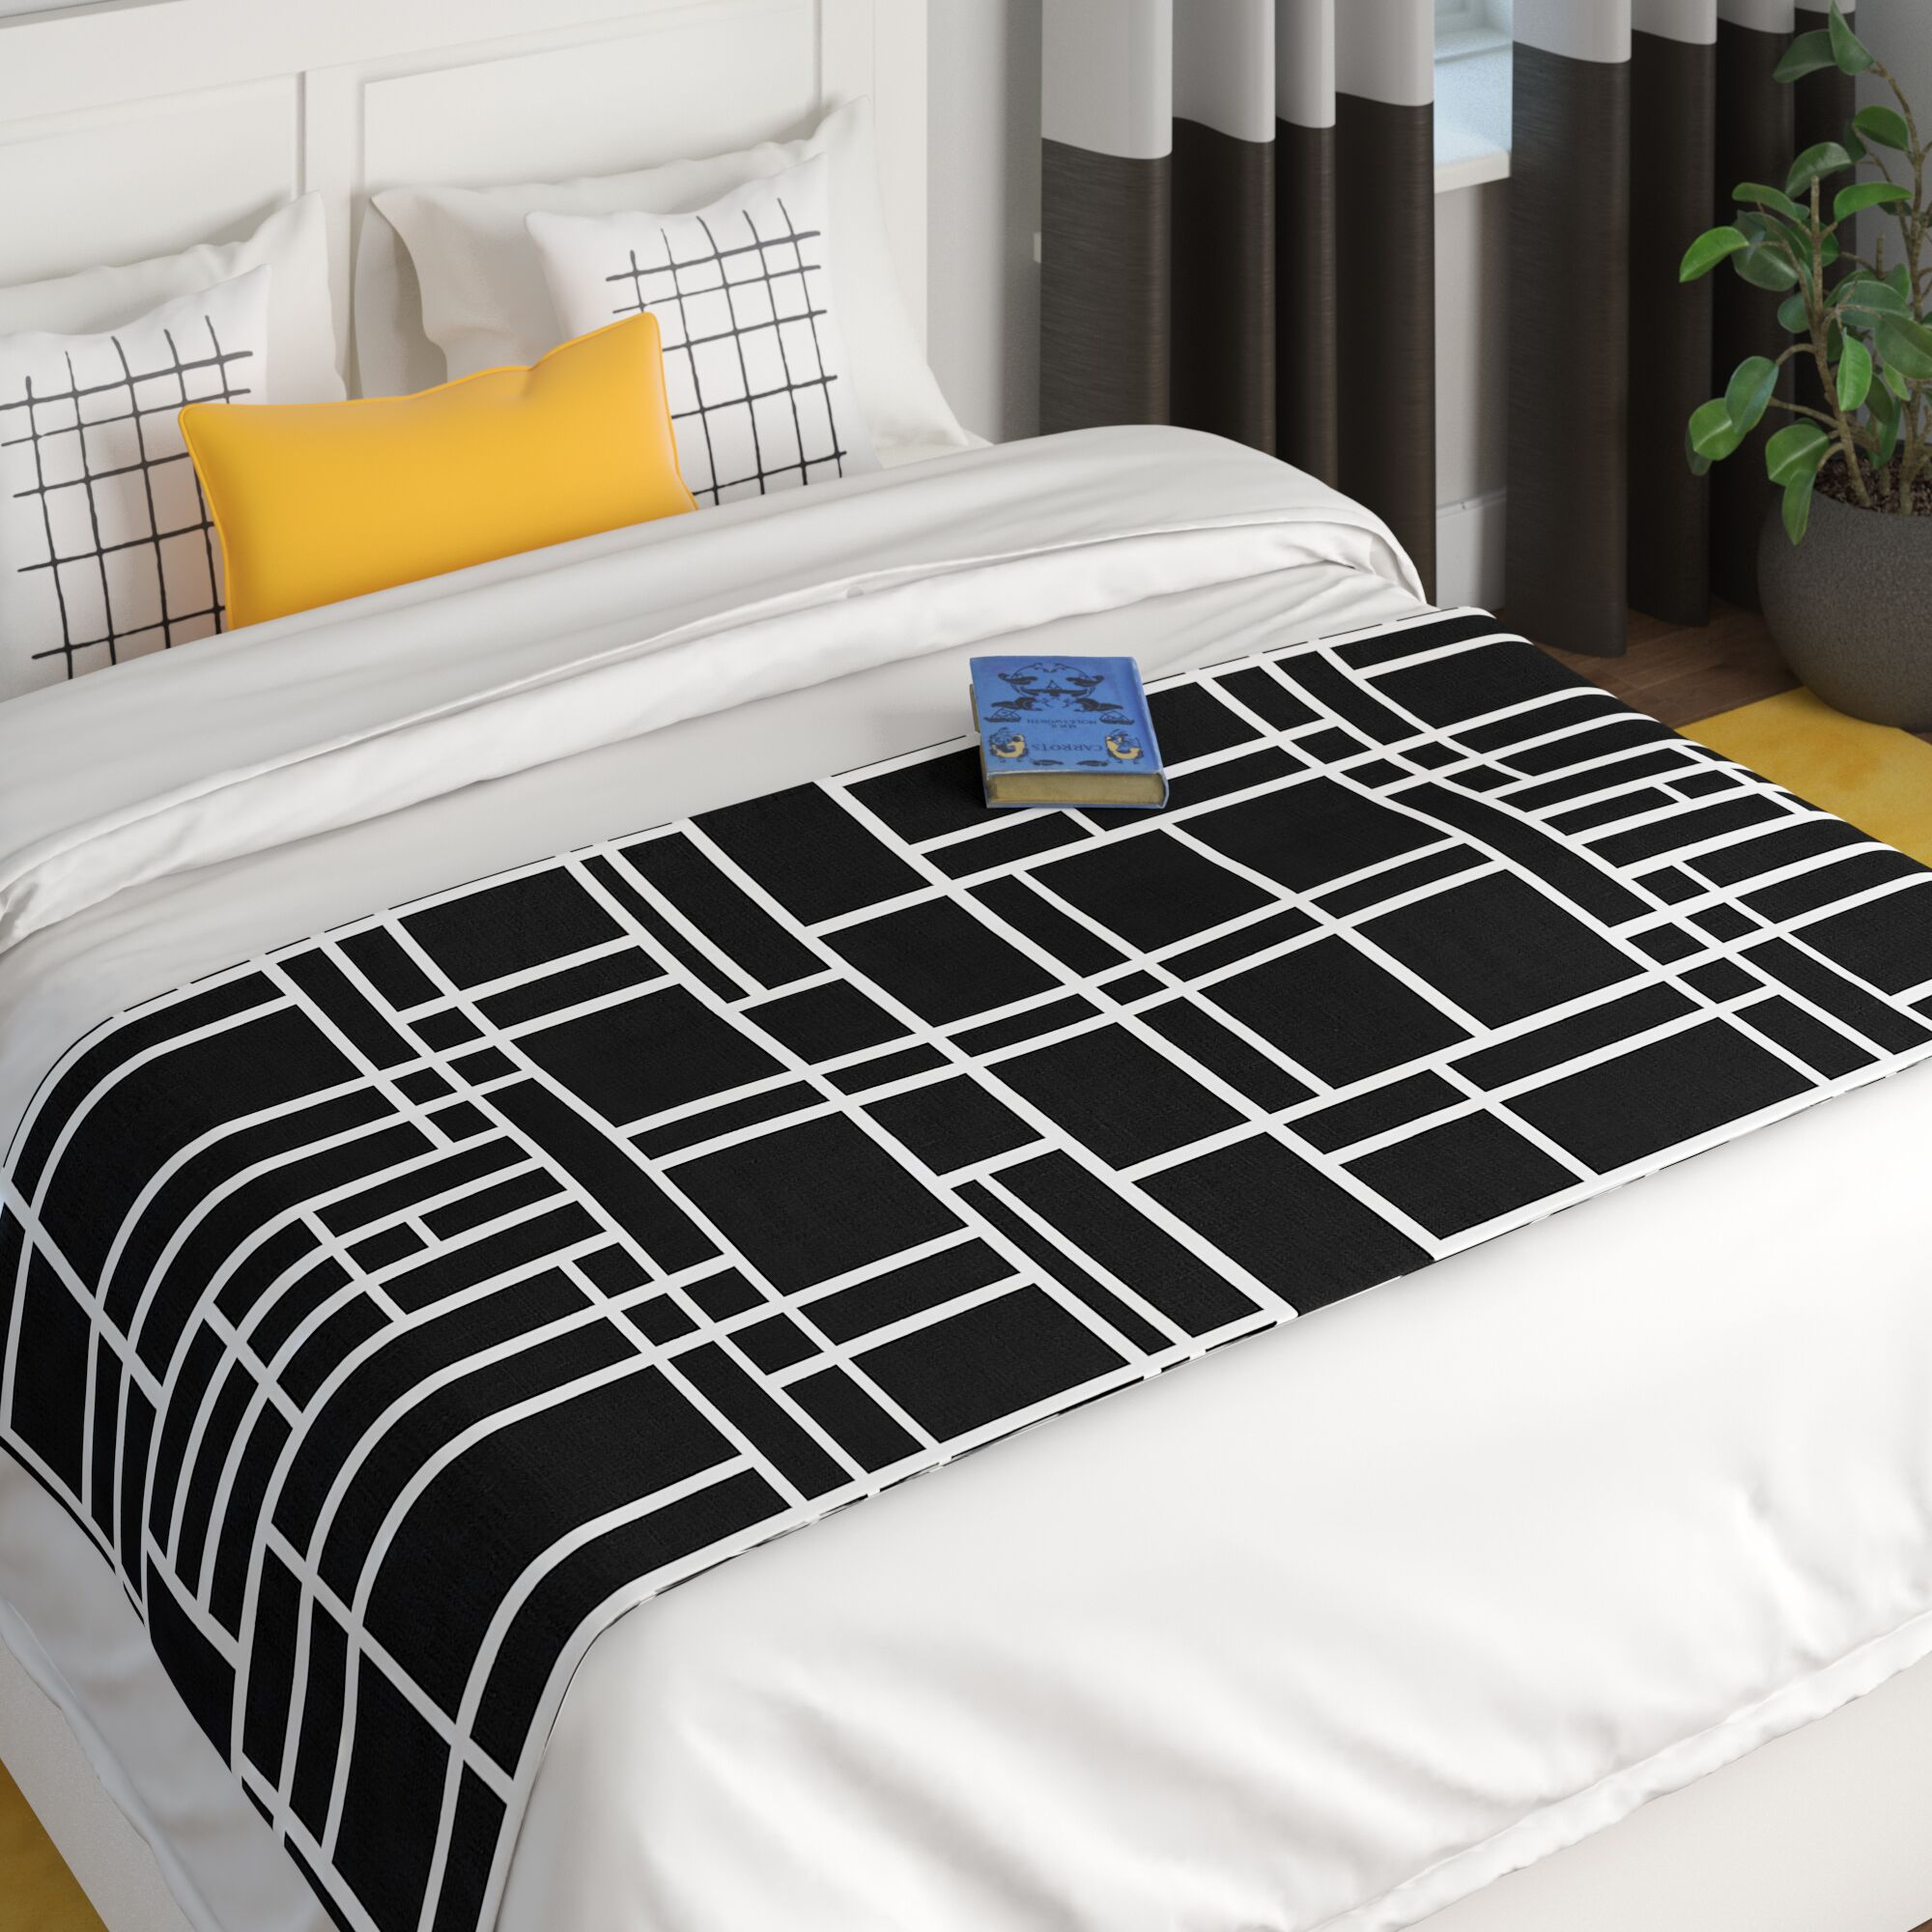 Project M Map Outline Simple Geometric Lines Bed Runner Color: Black